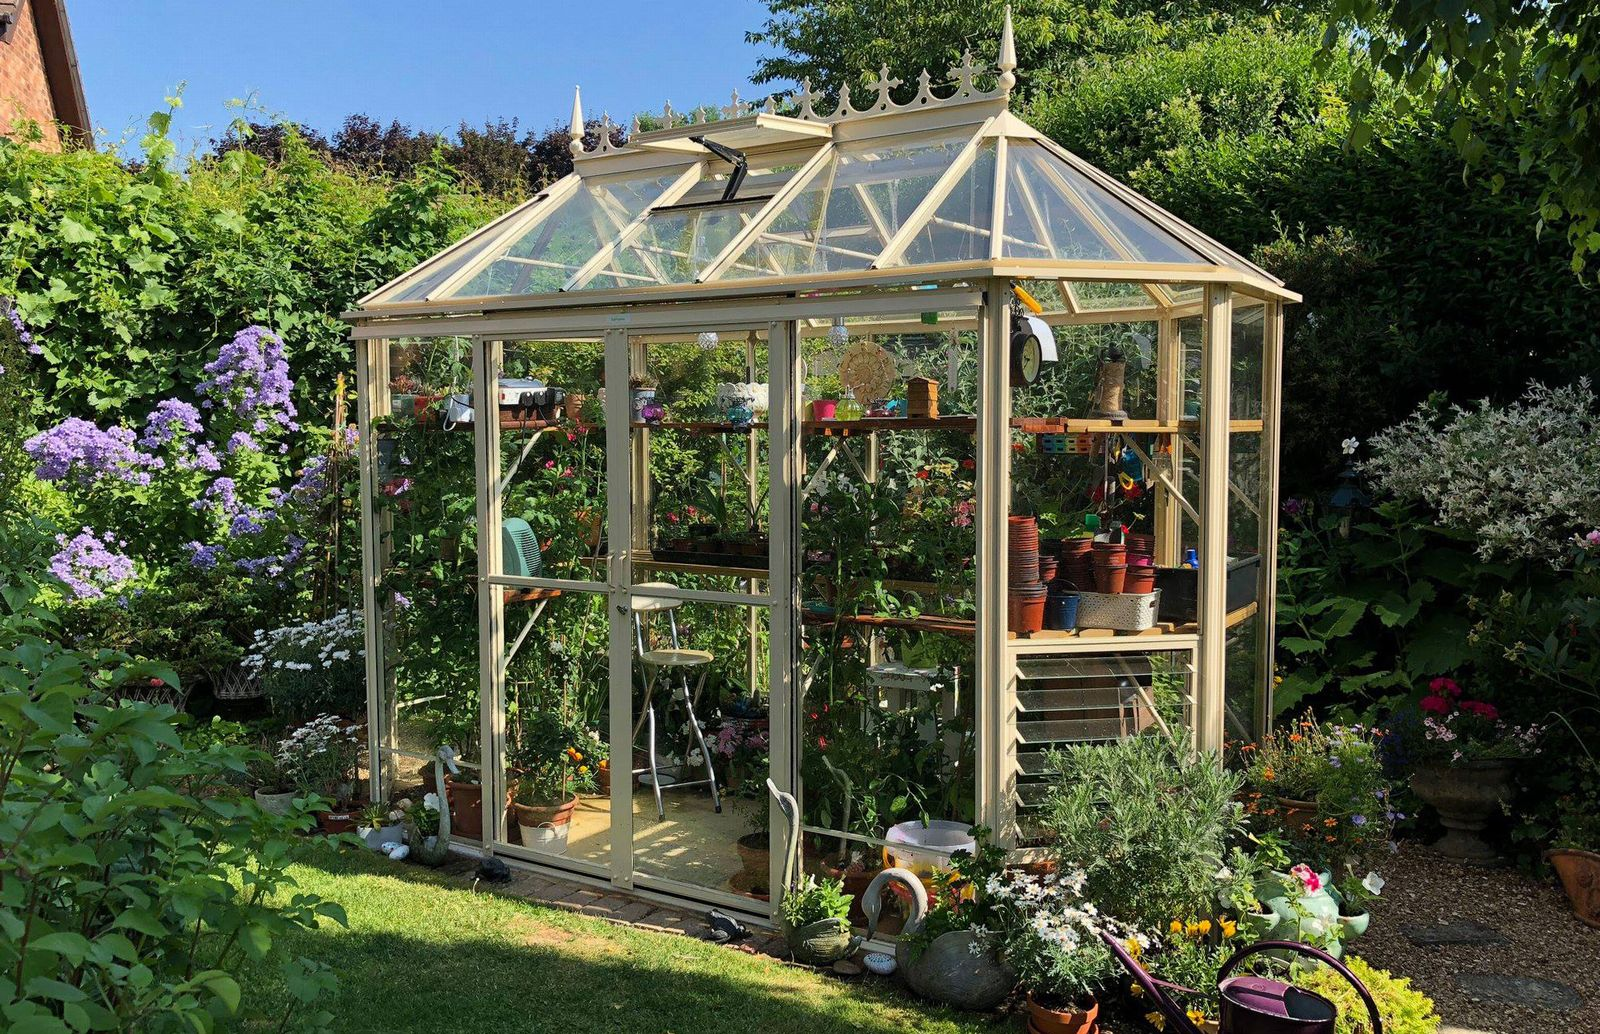 What Type of Greenhouse Should I Buy?